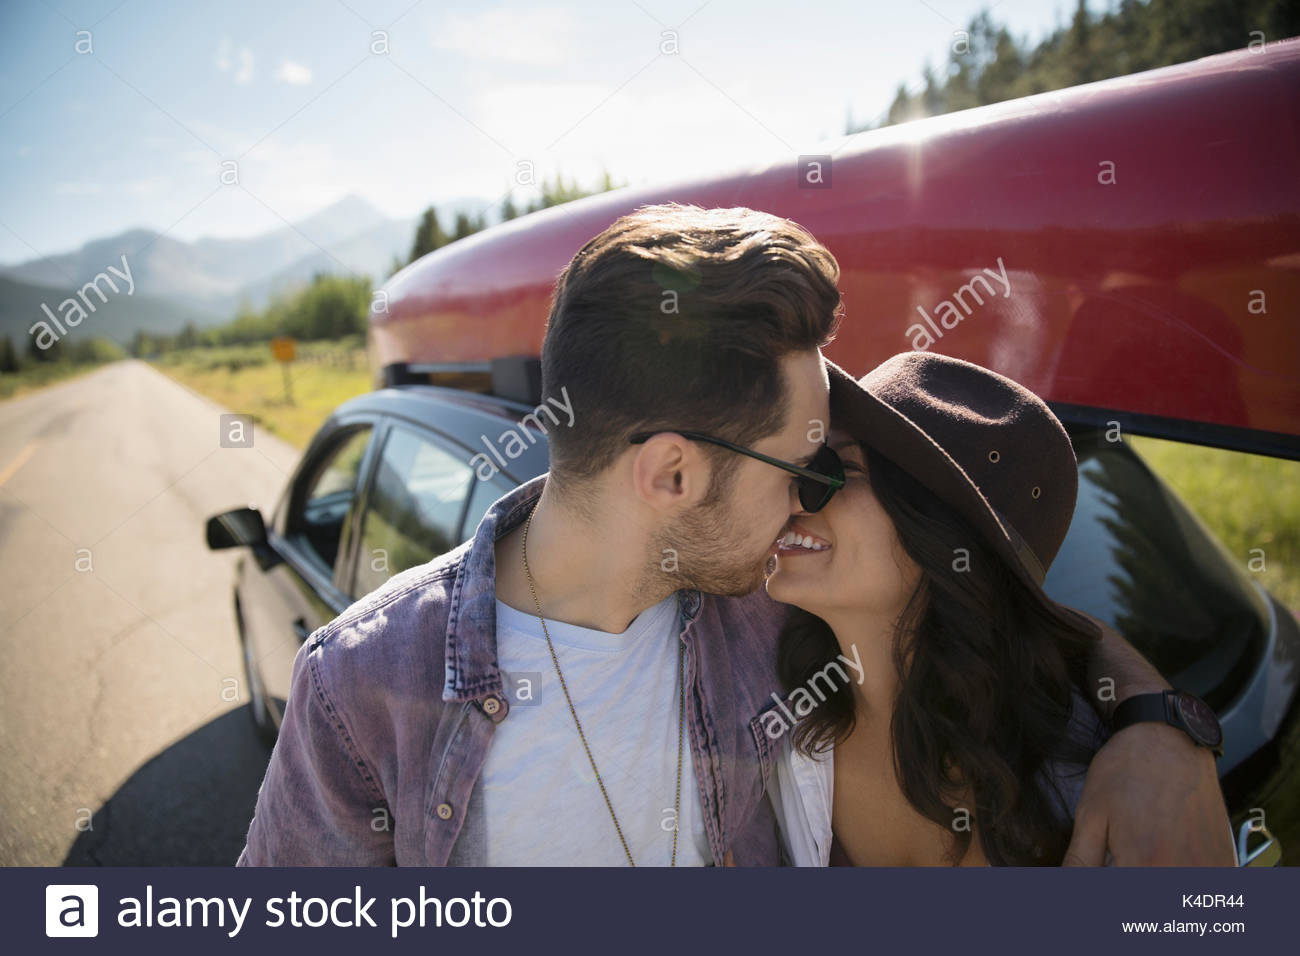 Affectionate young couple kissing outside car with canoe, enjoying road trip - Stock Image